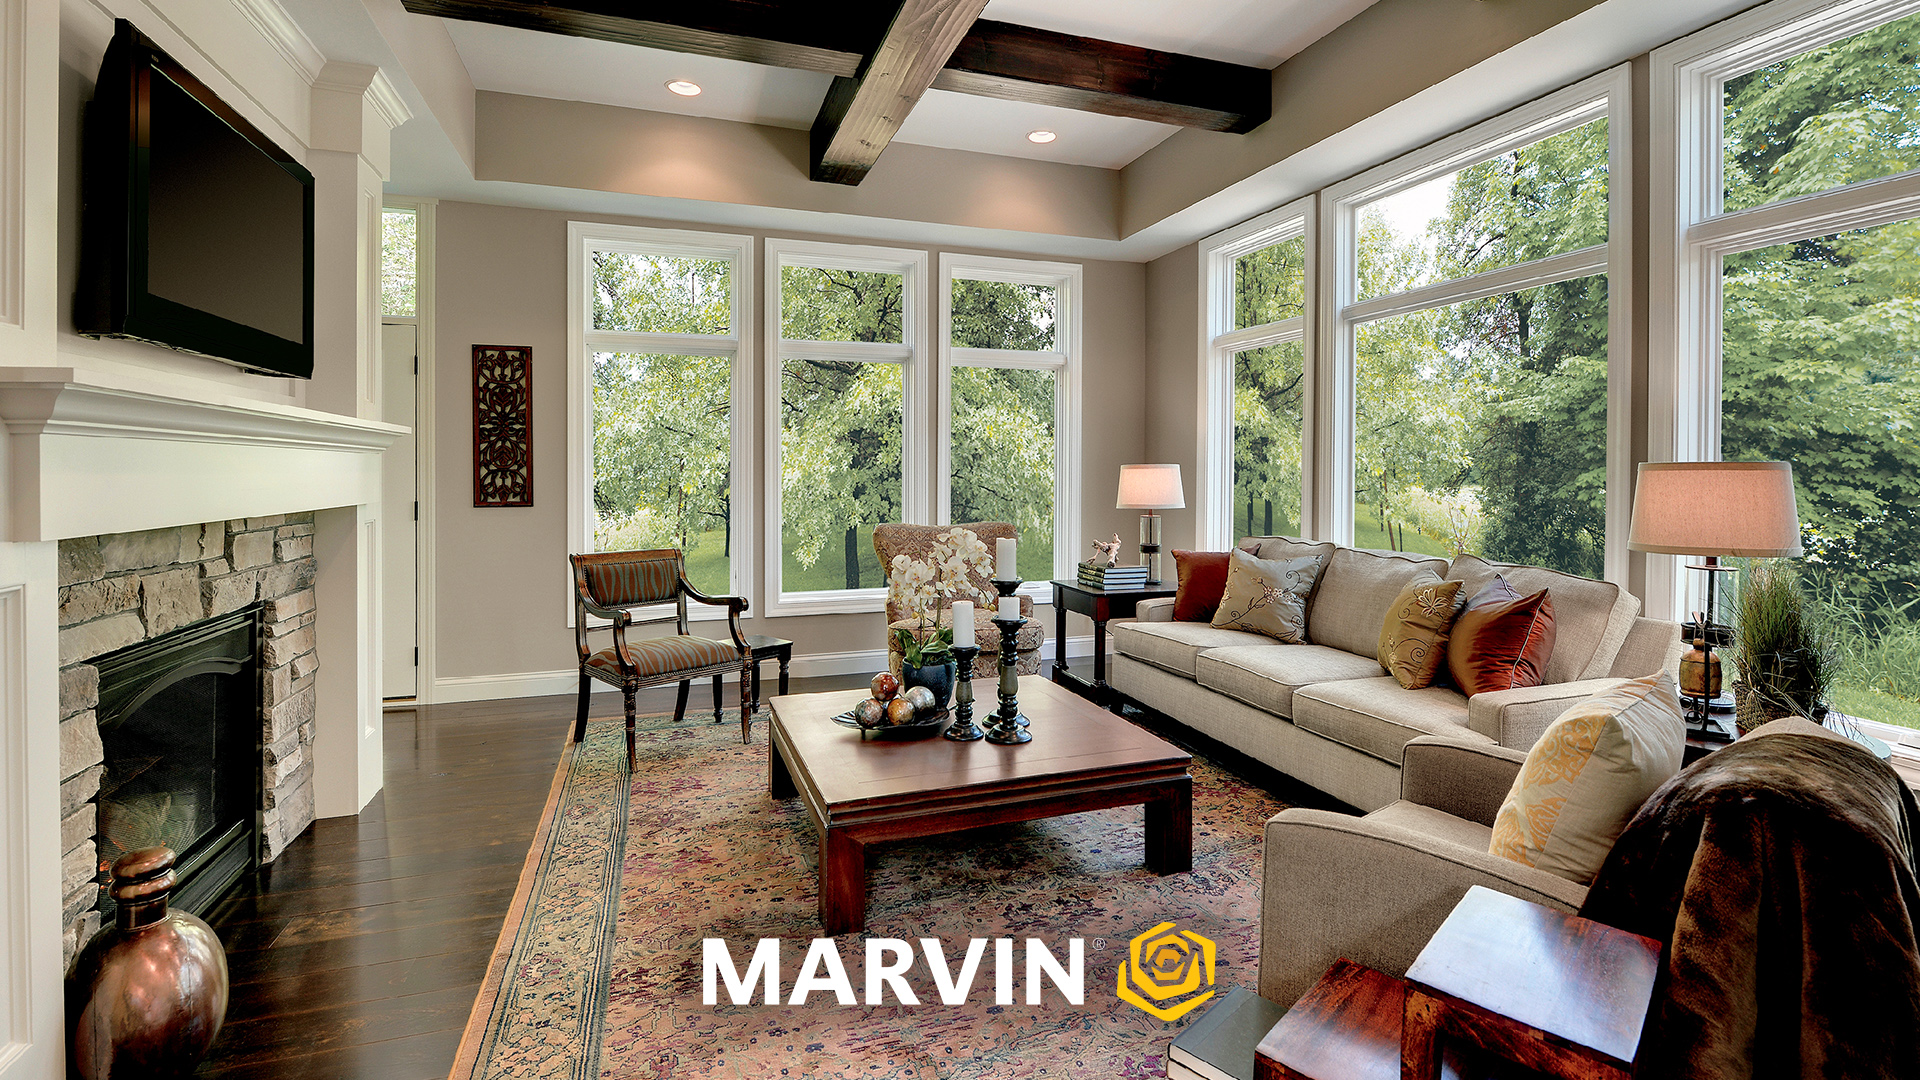 Living room with wood beams and white trim windows